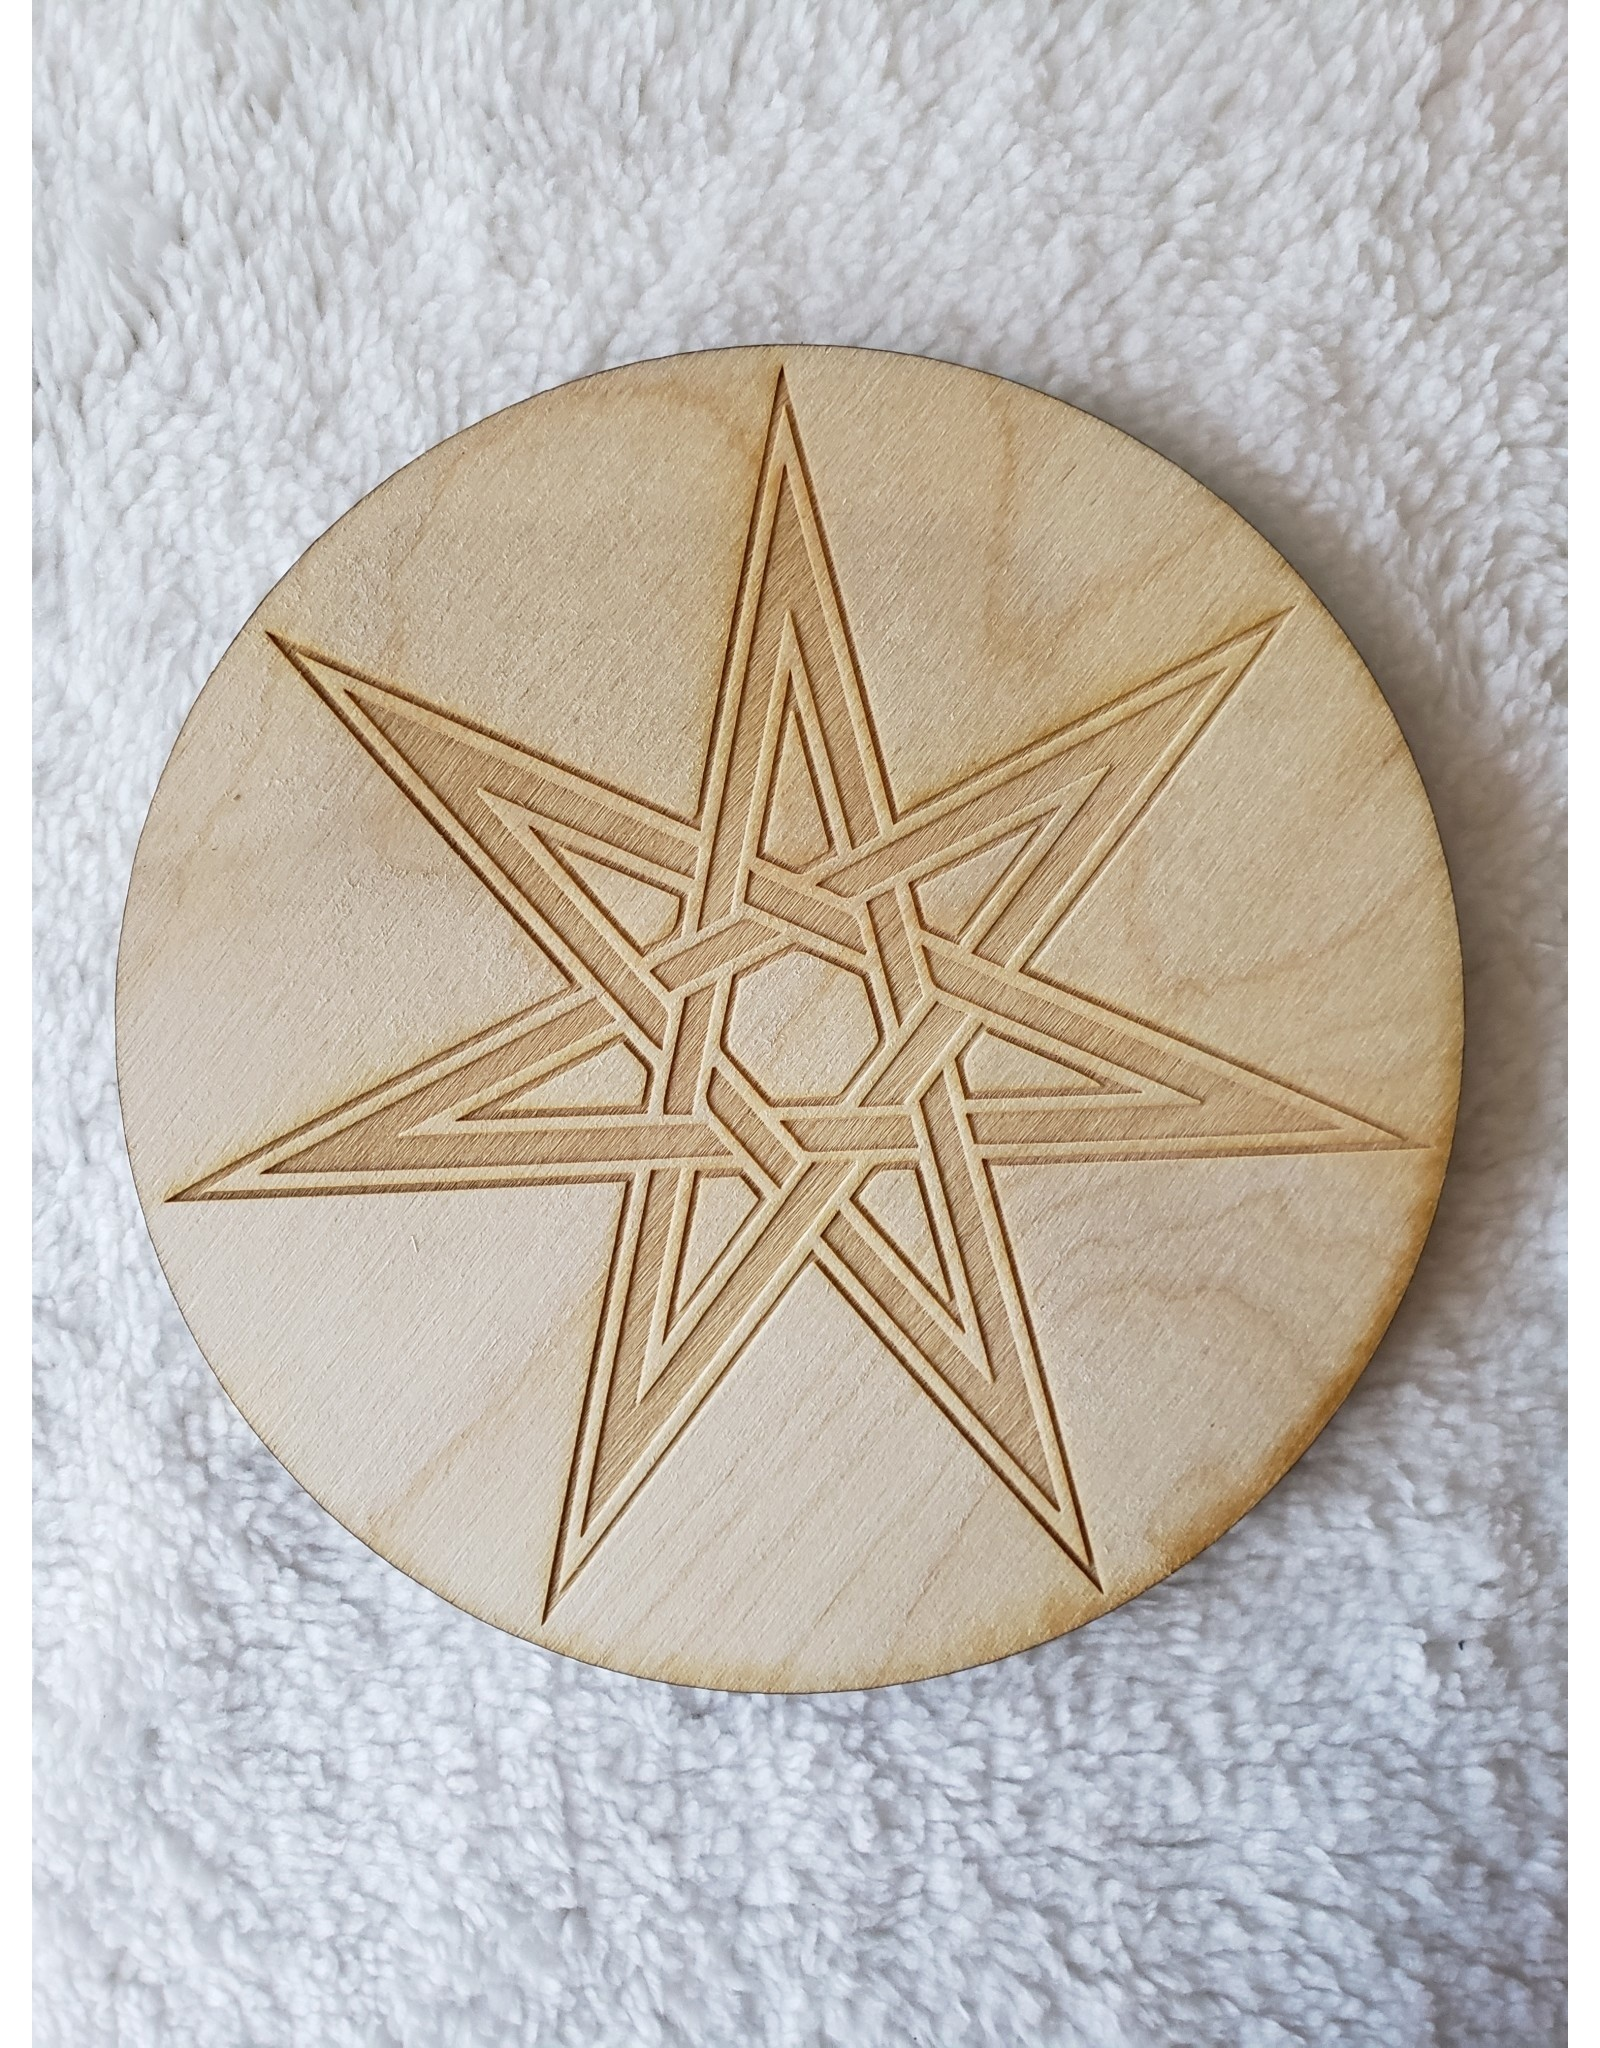 Zen and Meow Faery Star Crystal Grid - 6""